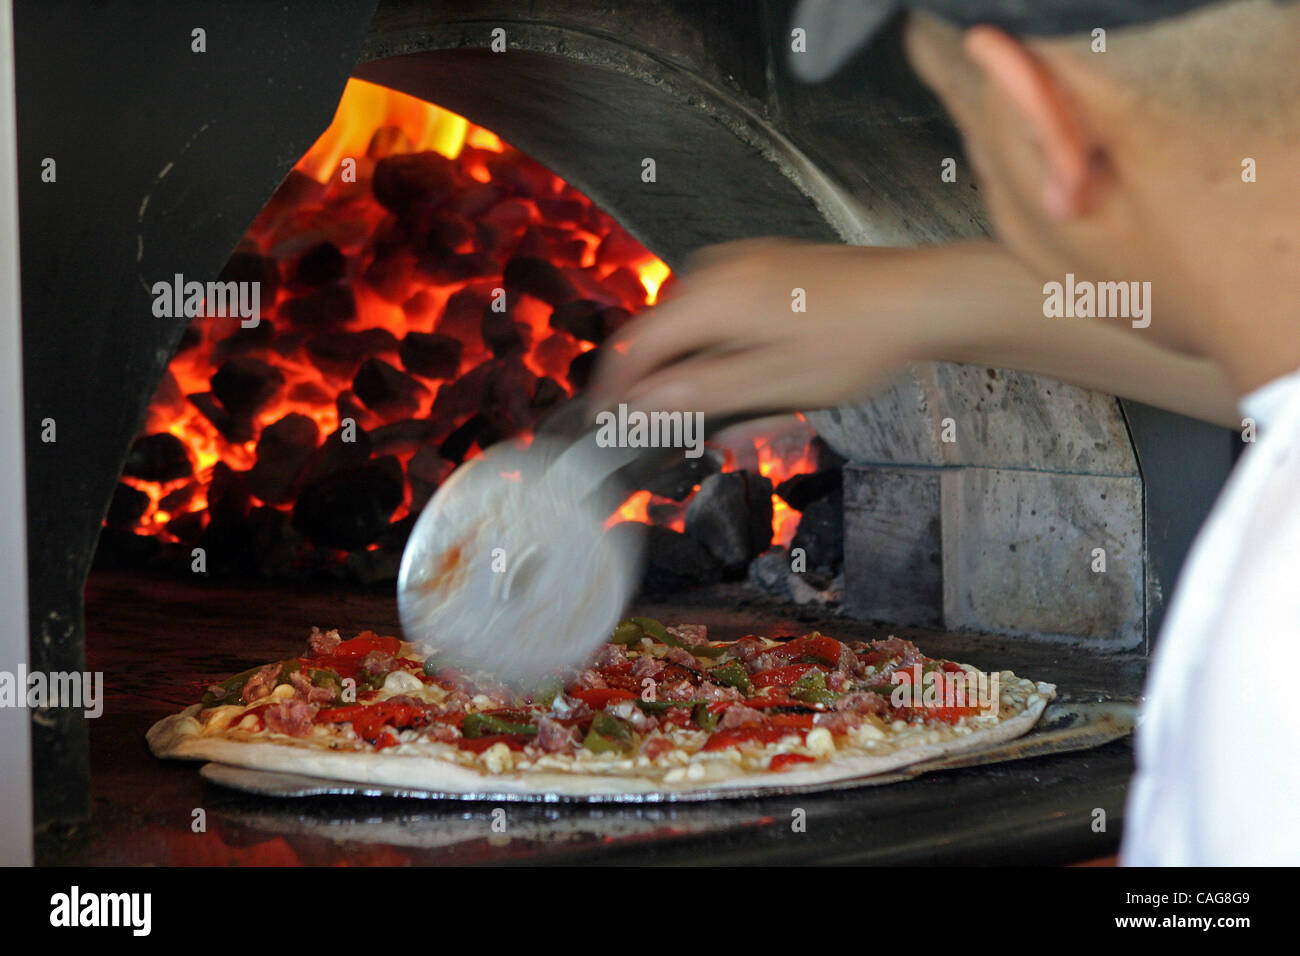 Coal fired oven stock photos coal fired oven stock images alamy for Grimaldi s pizza palm beach gardens